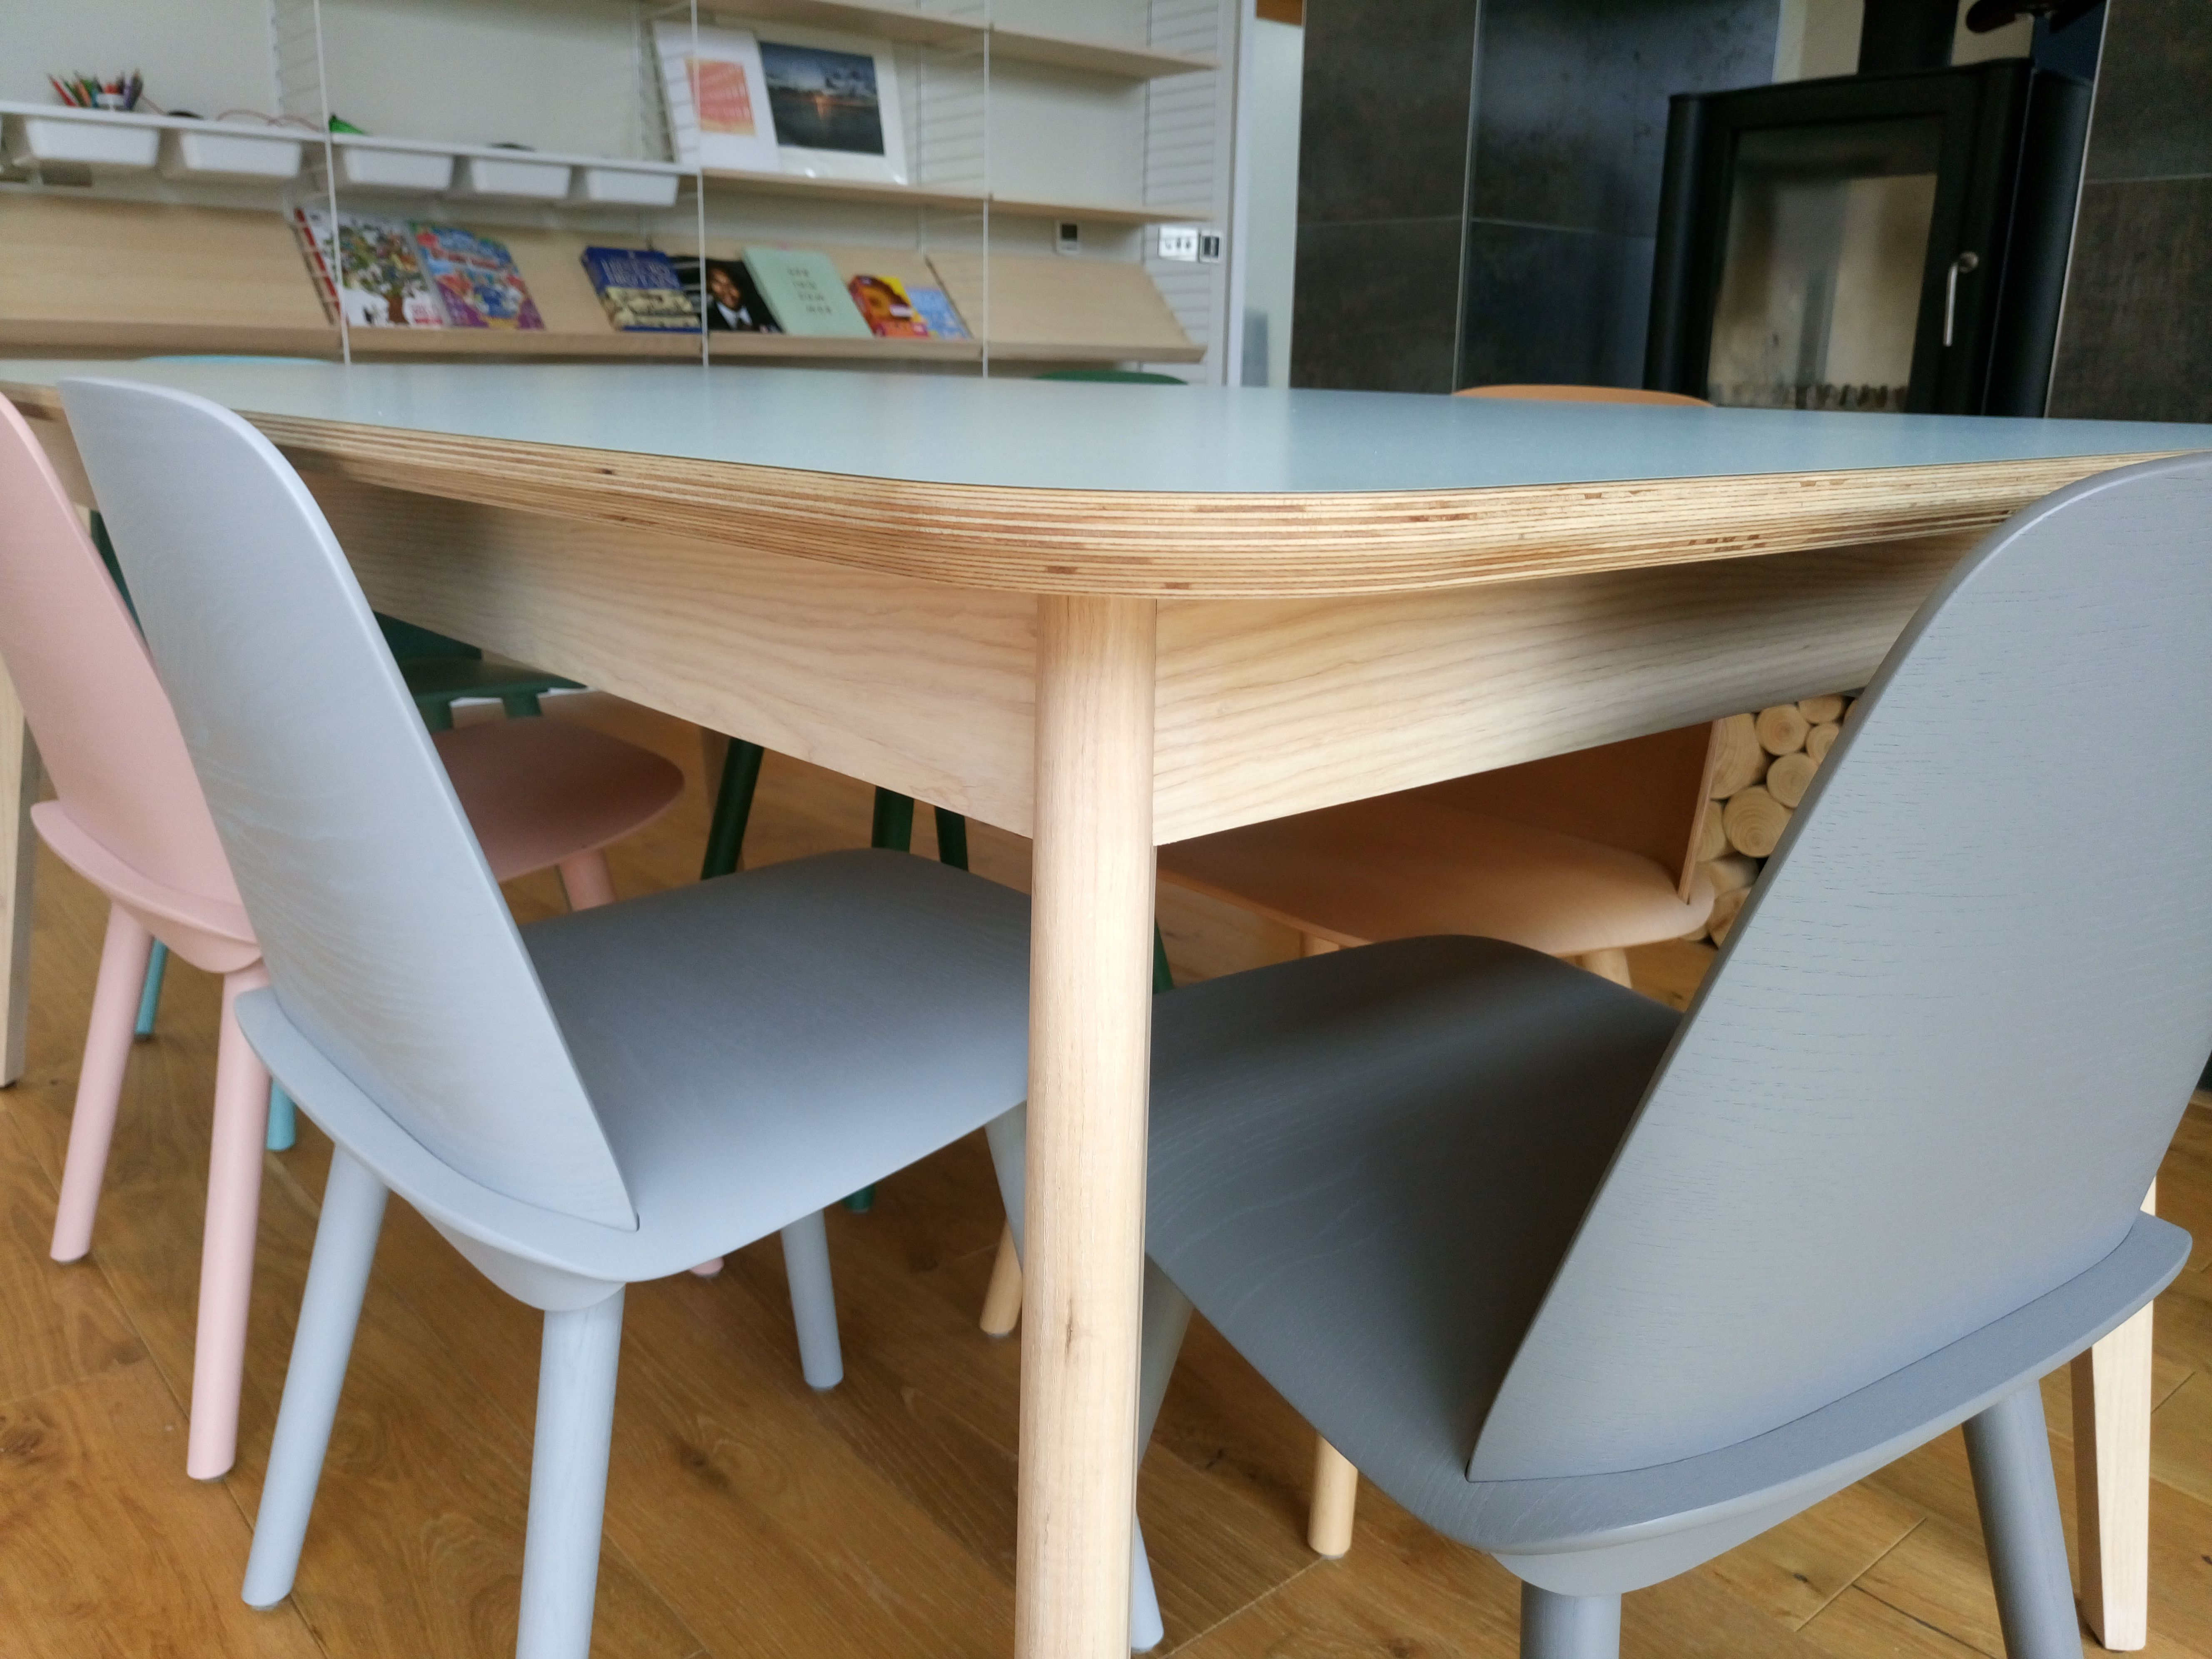 Birch Plywood table top with a laminated finish. Ash frame & legs ...